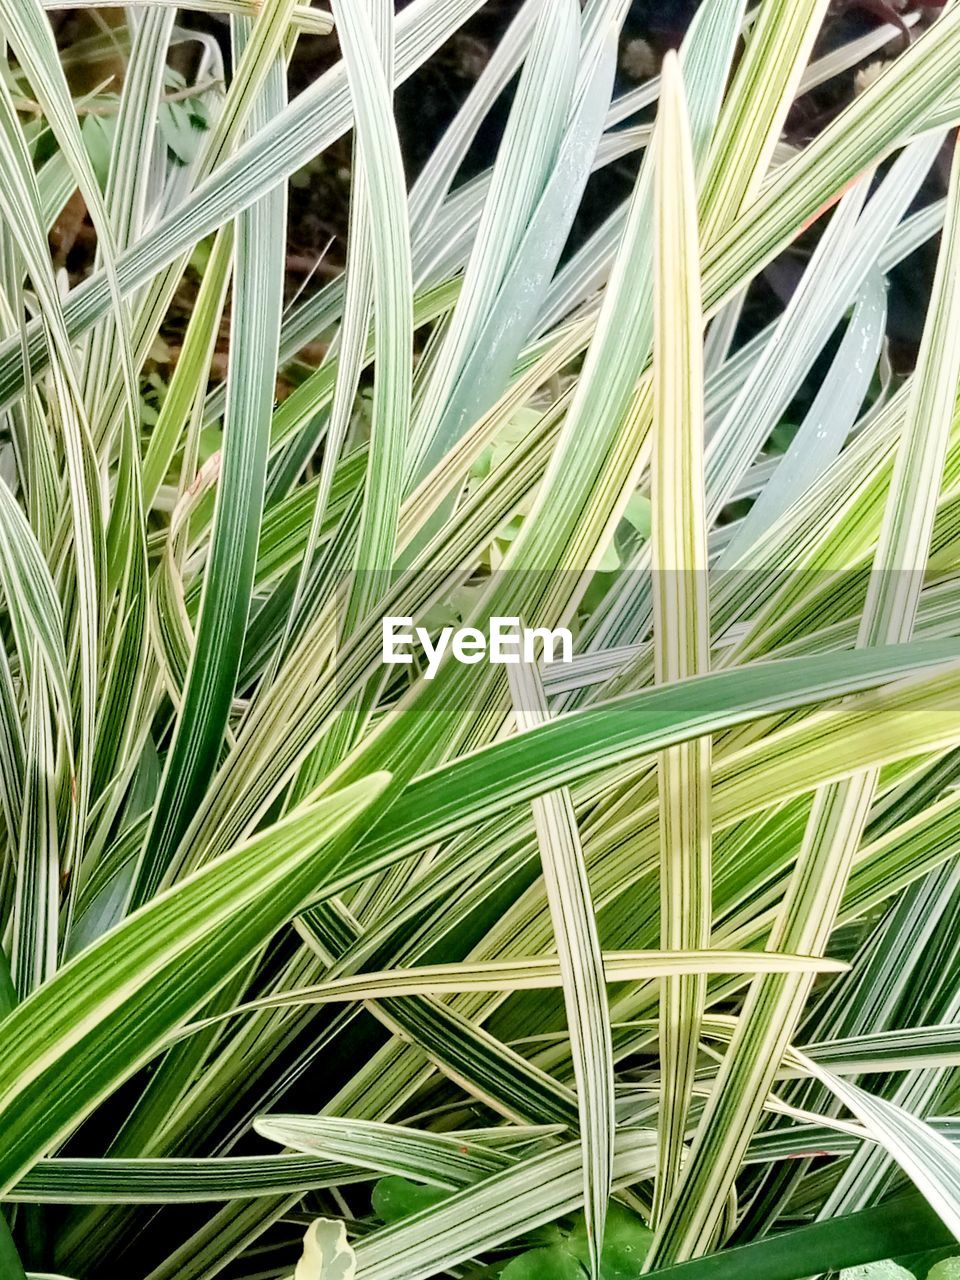 green color, full frame, backgrounds, plant, growth, close-up, leaf, beauty in nature, no people, nature, grass, plant part, day, palm leaf, outdoors, palm tree, textured, pattern, blade of grass, tree, leaves